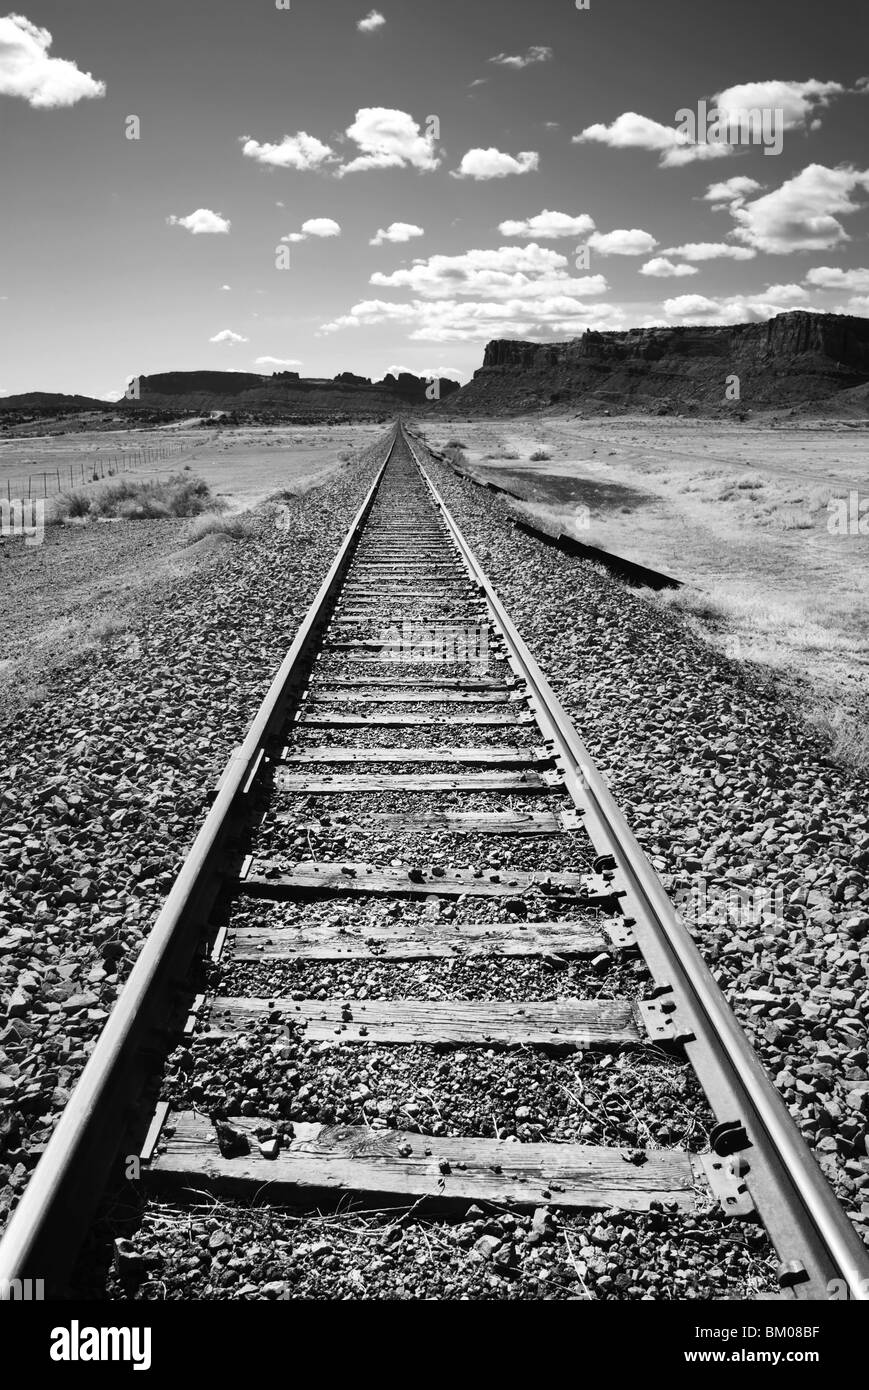 train tracks disappearing into the desert landscape, moab, southeastern utah, contrast the vast desert landscape - Stock Image